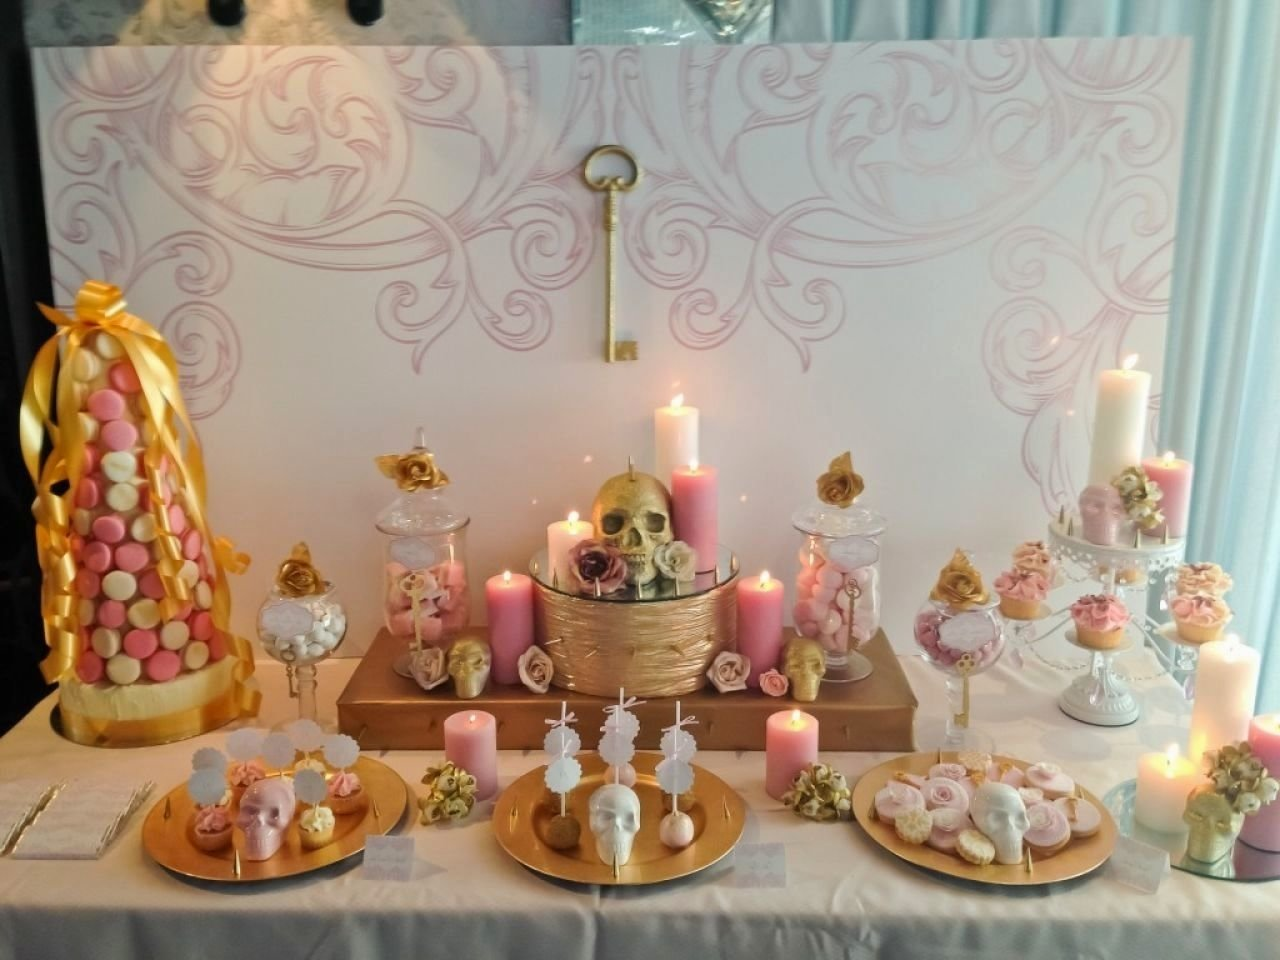 10 Elegant Ideas For A 21St Birthday Party Themes 21 Together With